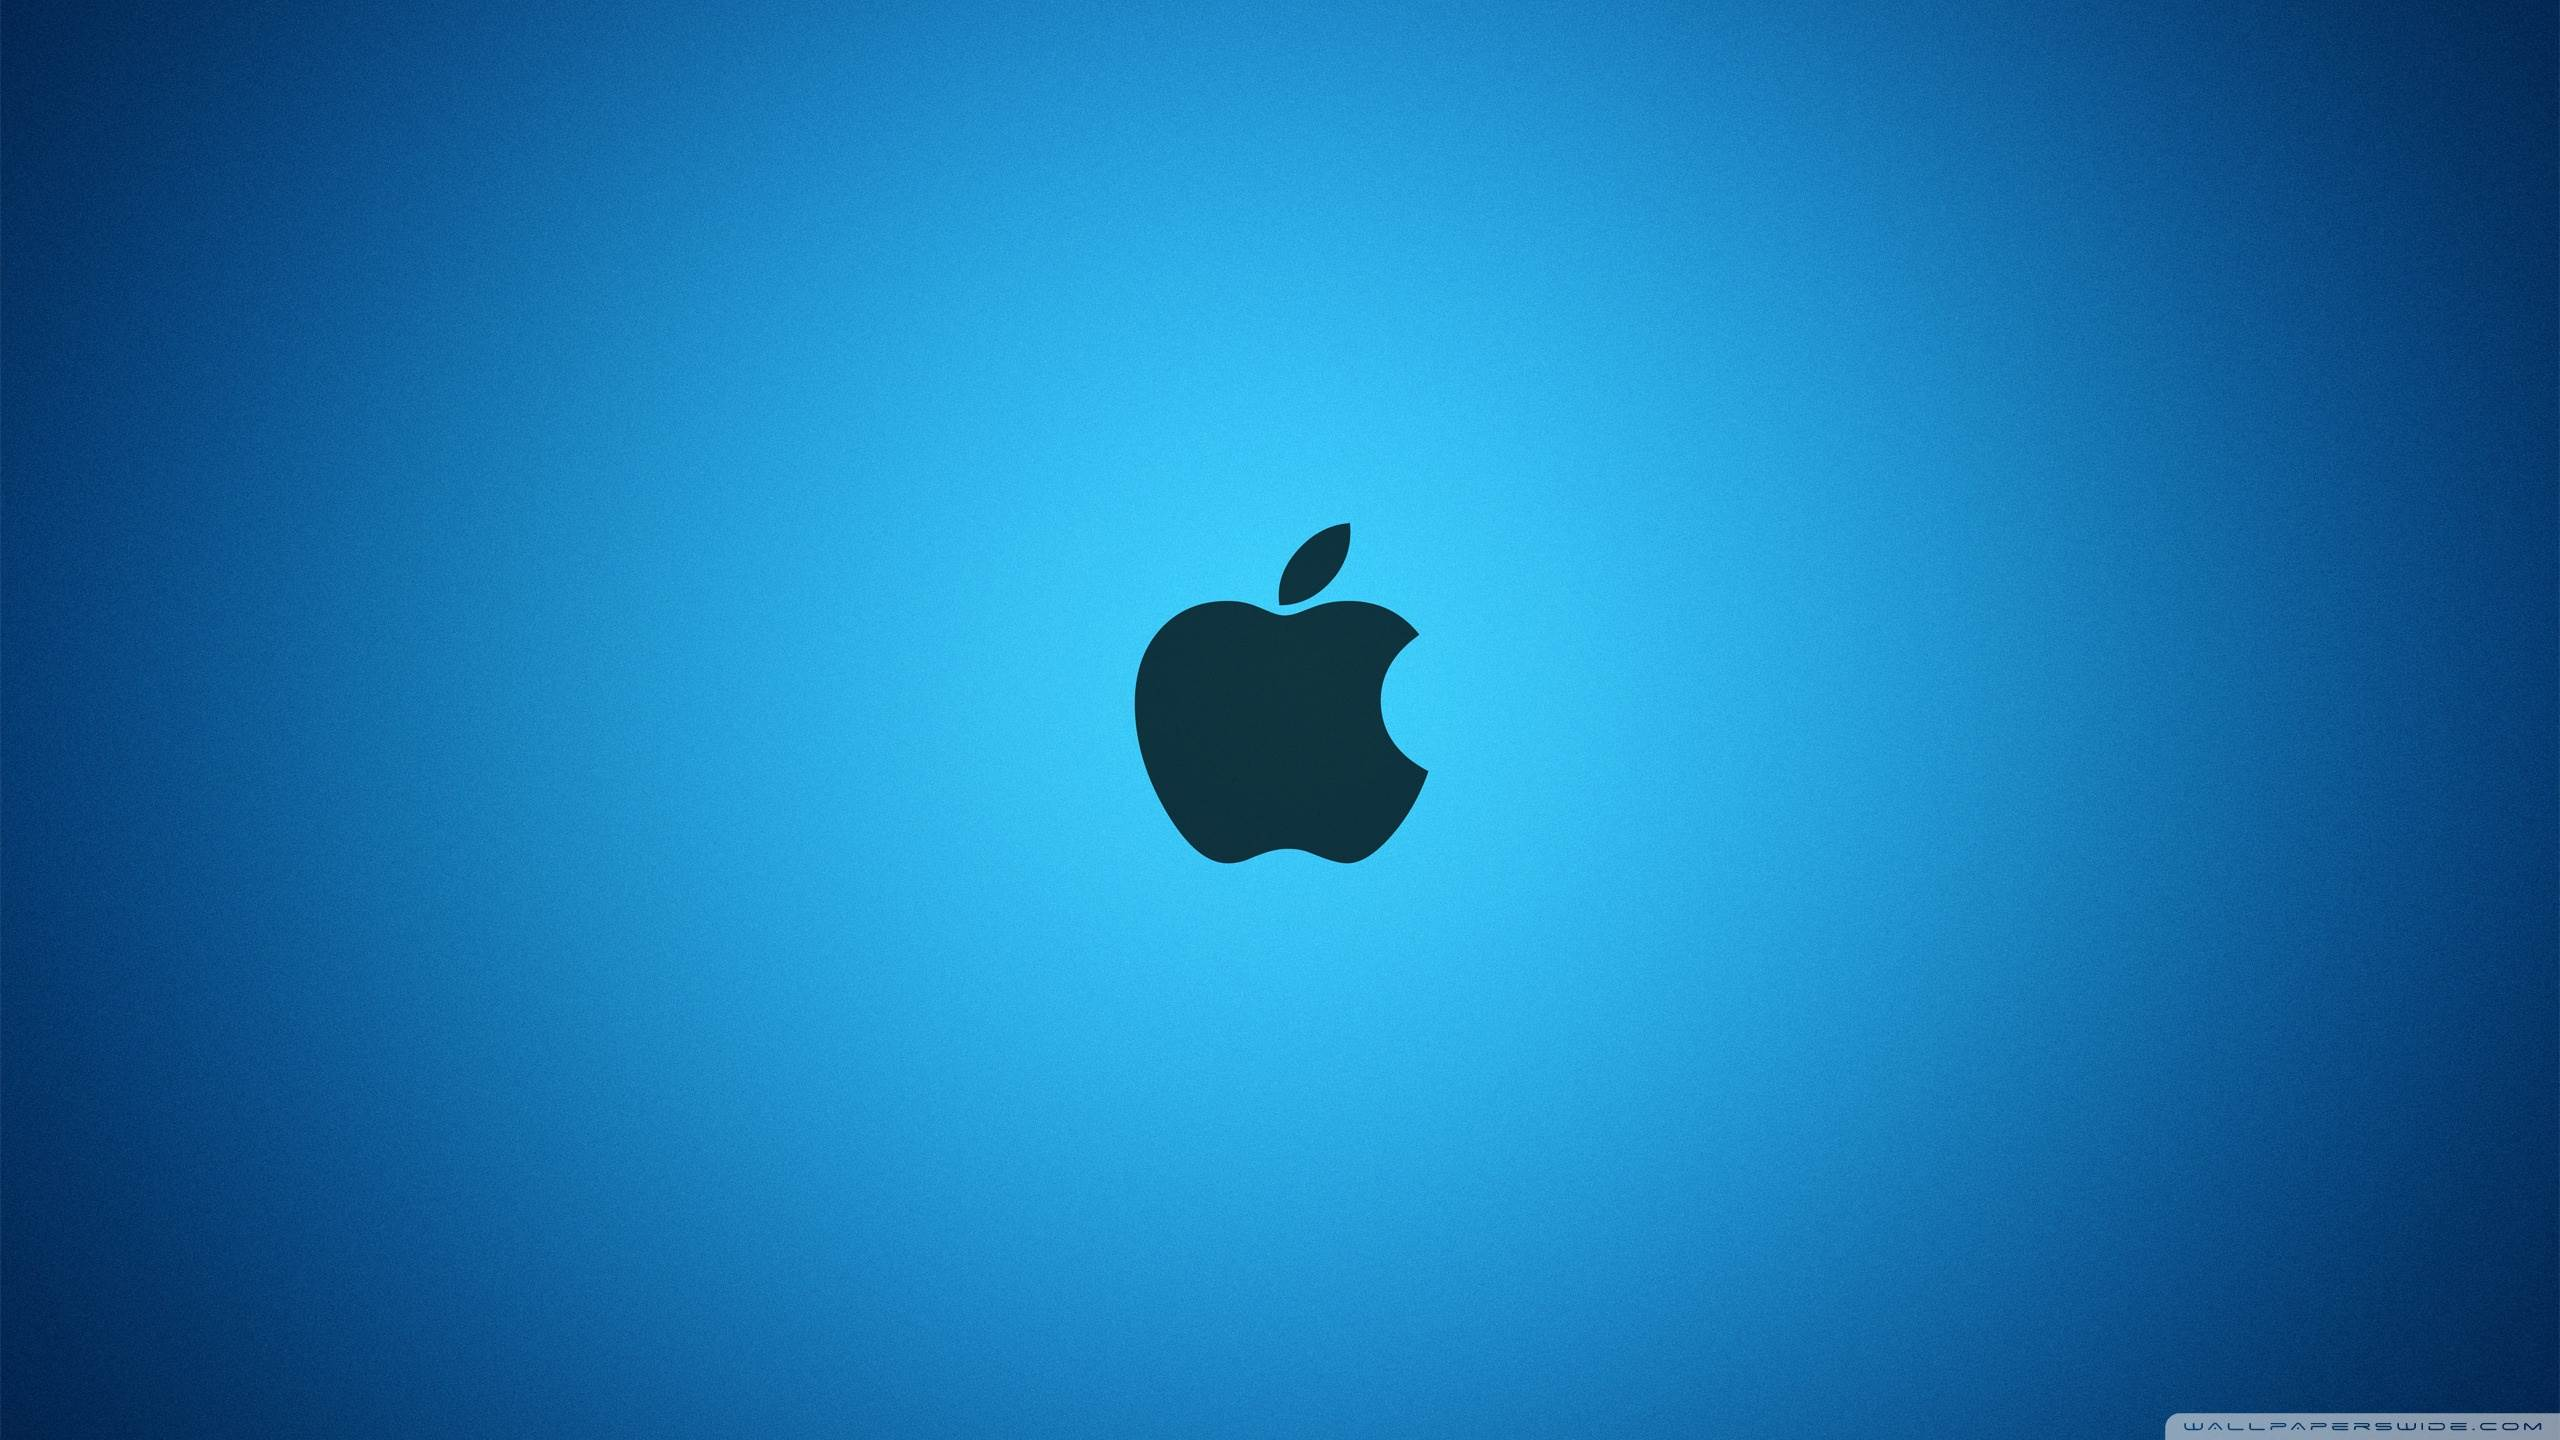 Apple iPhone  Wallpapers HD 2560x1440